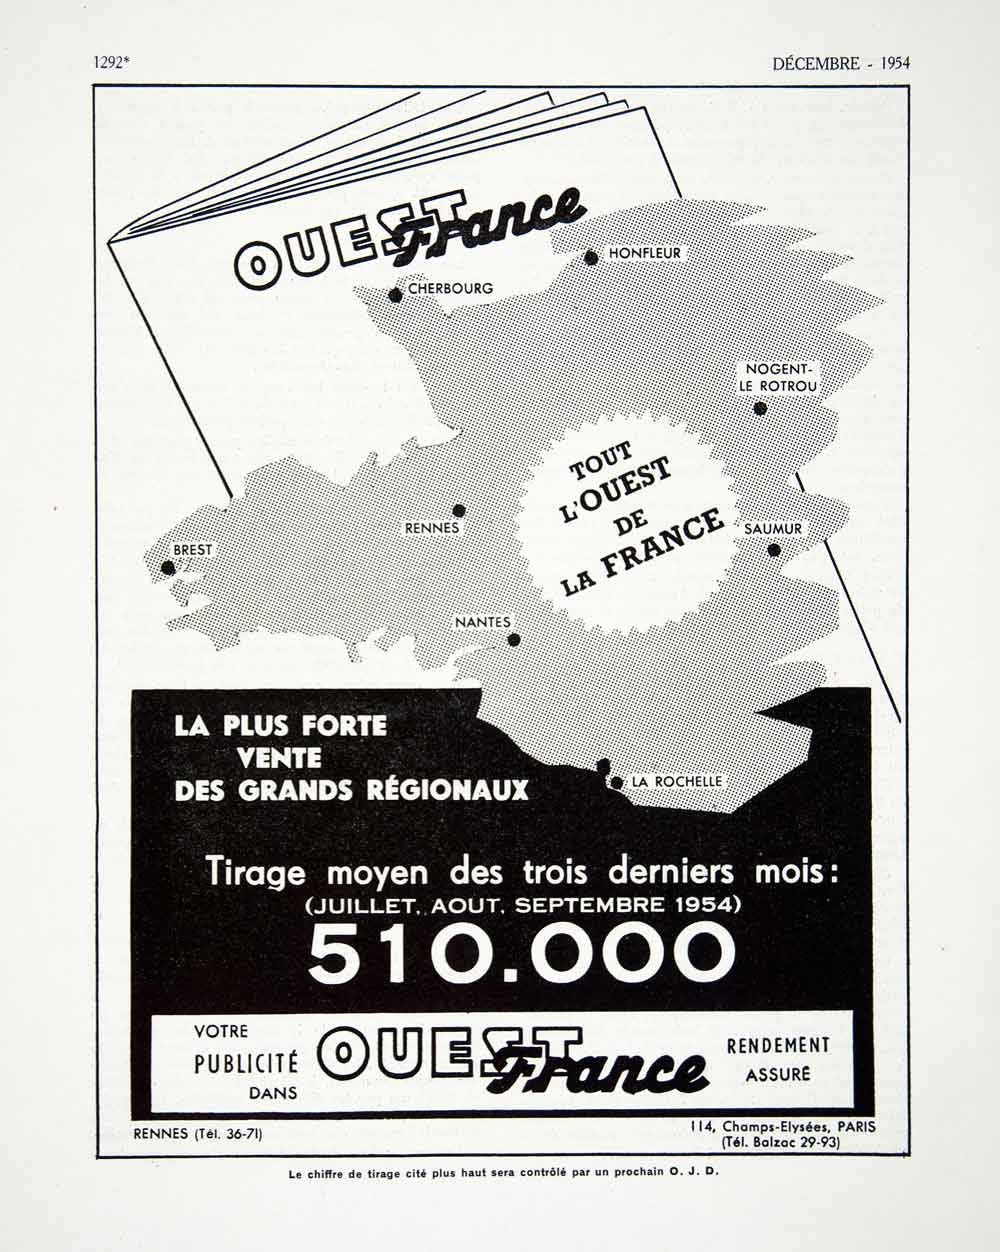 1954 Ad Ouest France 114 Champs-Elysees Paris Newspaper Circulation VEN8